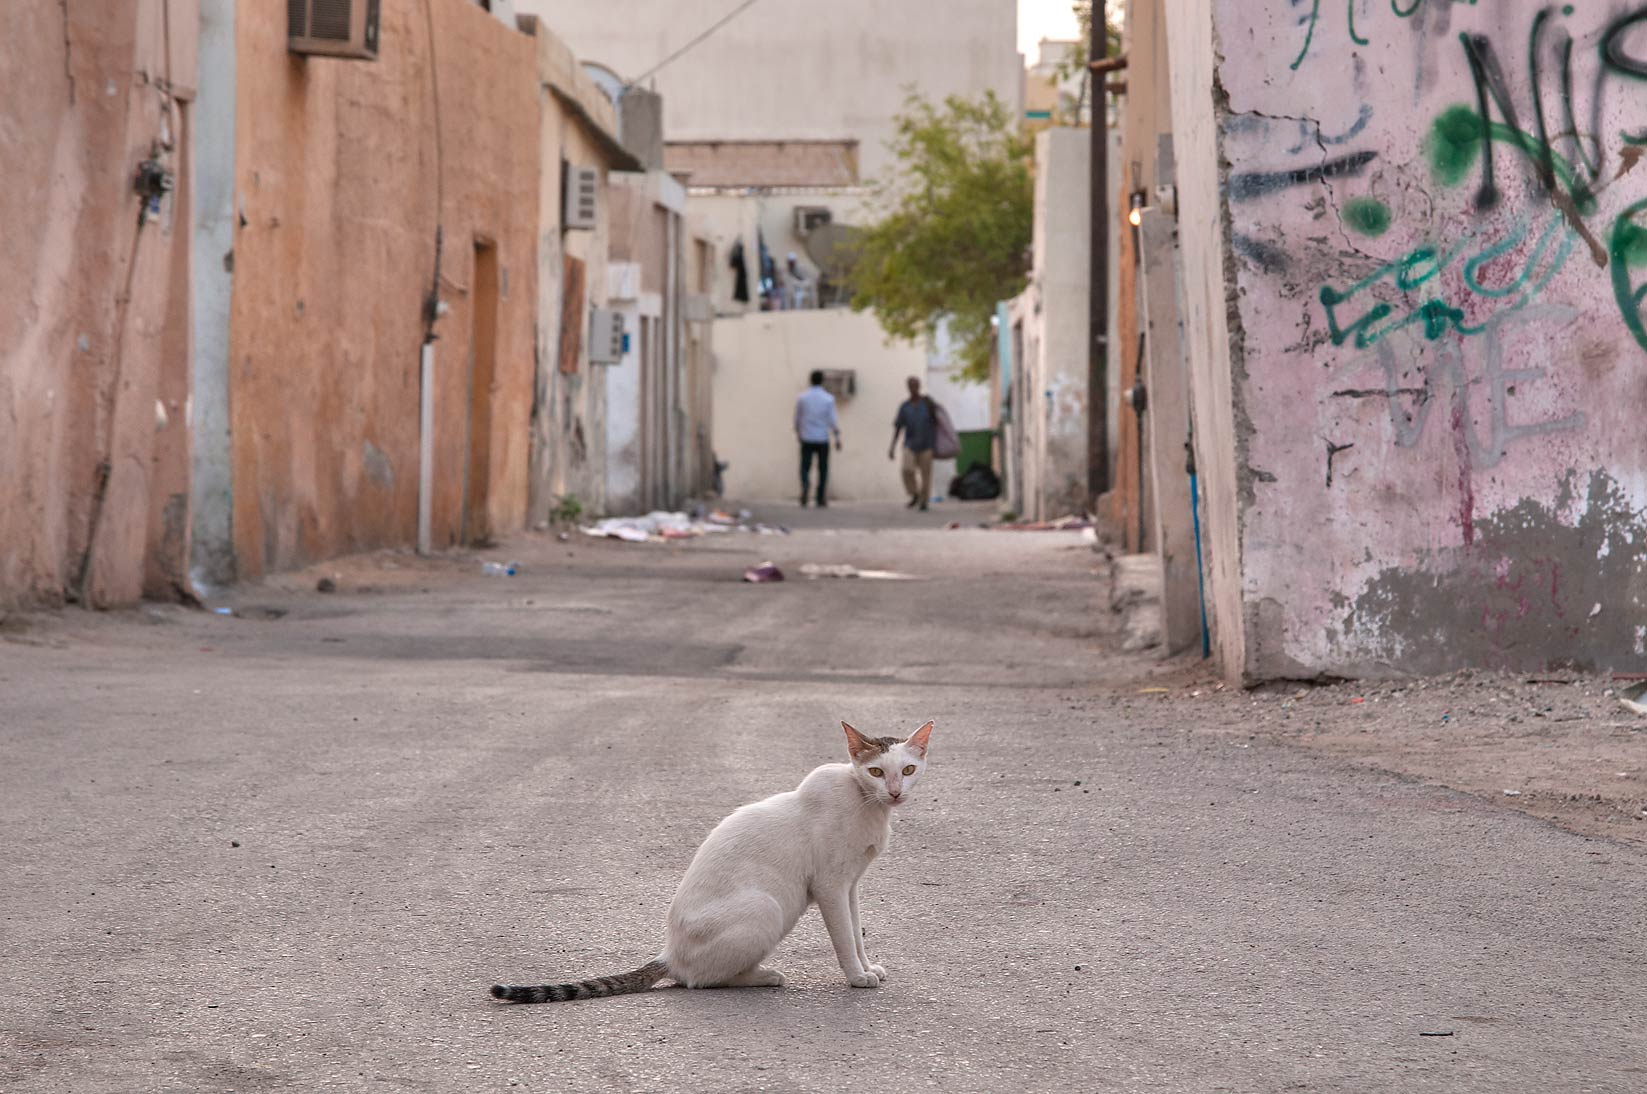 Cat at a corner of Sikkat Numan and Al Taawon in Najma area. Doha, Qatar